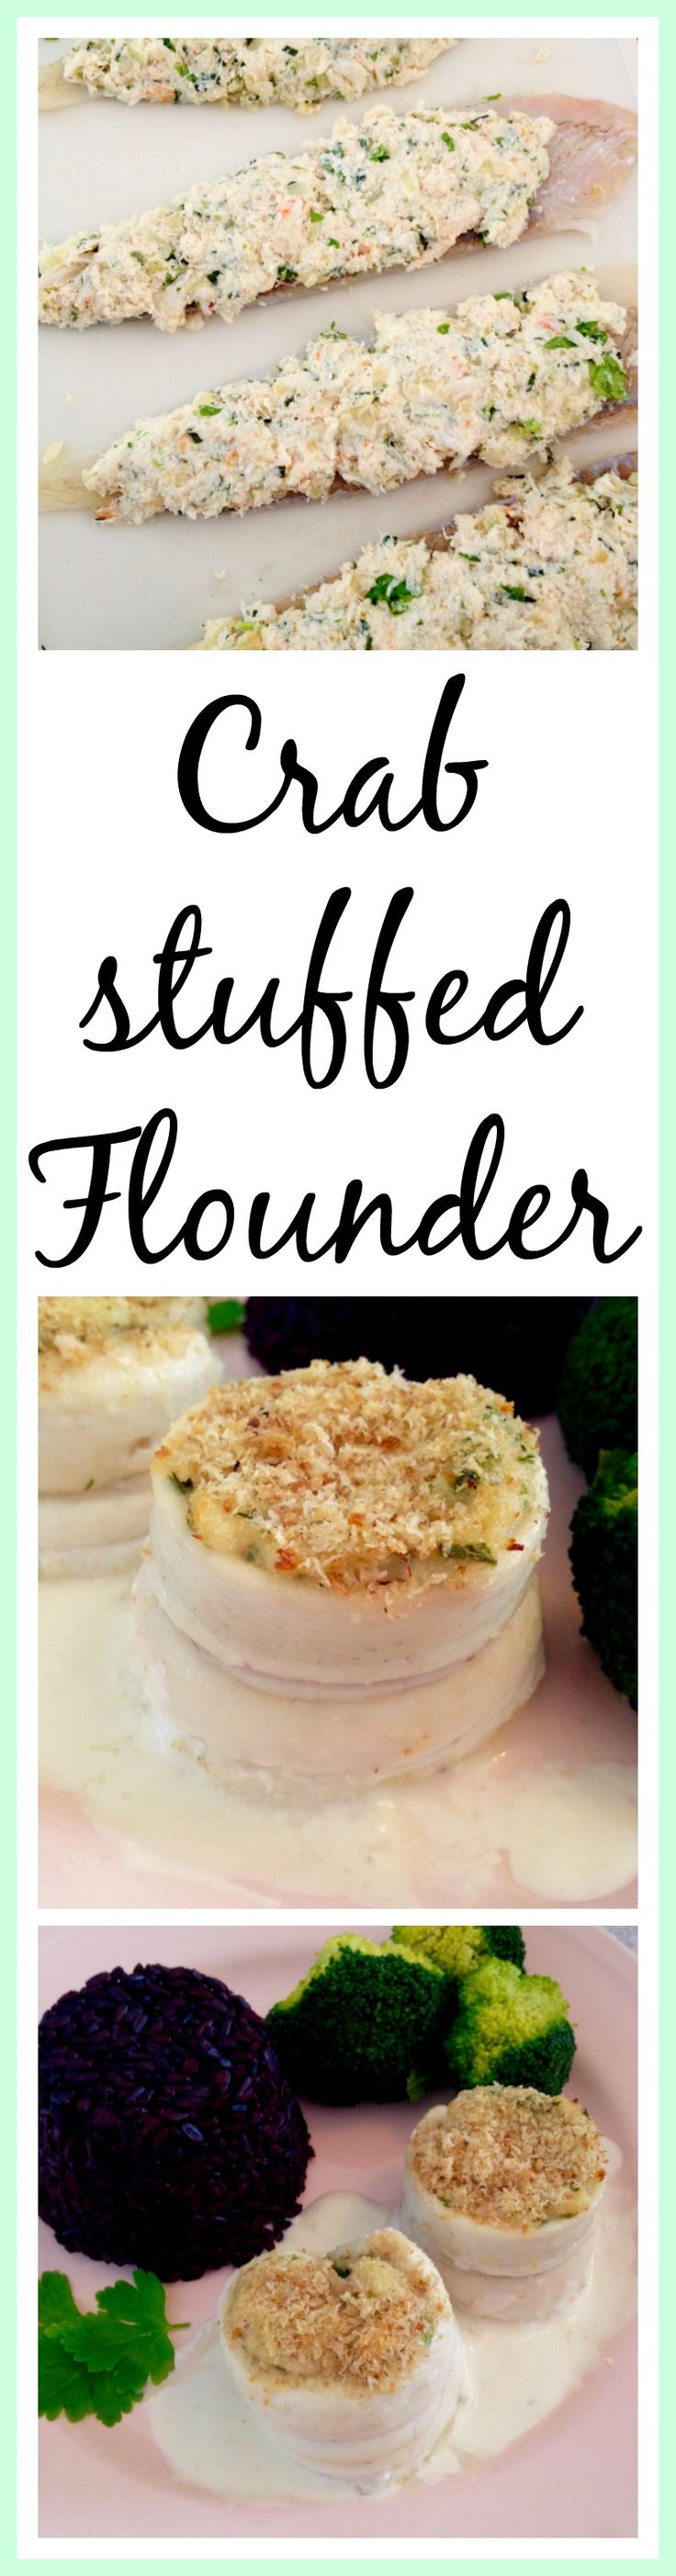 Crab stuffed Flounder. This easy recipe is a real show stopper. A mixture of crab, cheese and herbs is rolled into flounder fillets and baked. So delicious your guests will beg for more. thecookingspoon.org